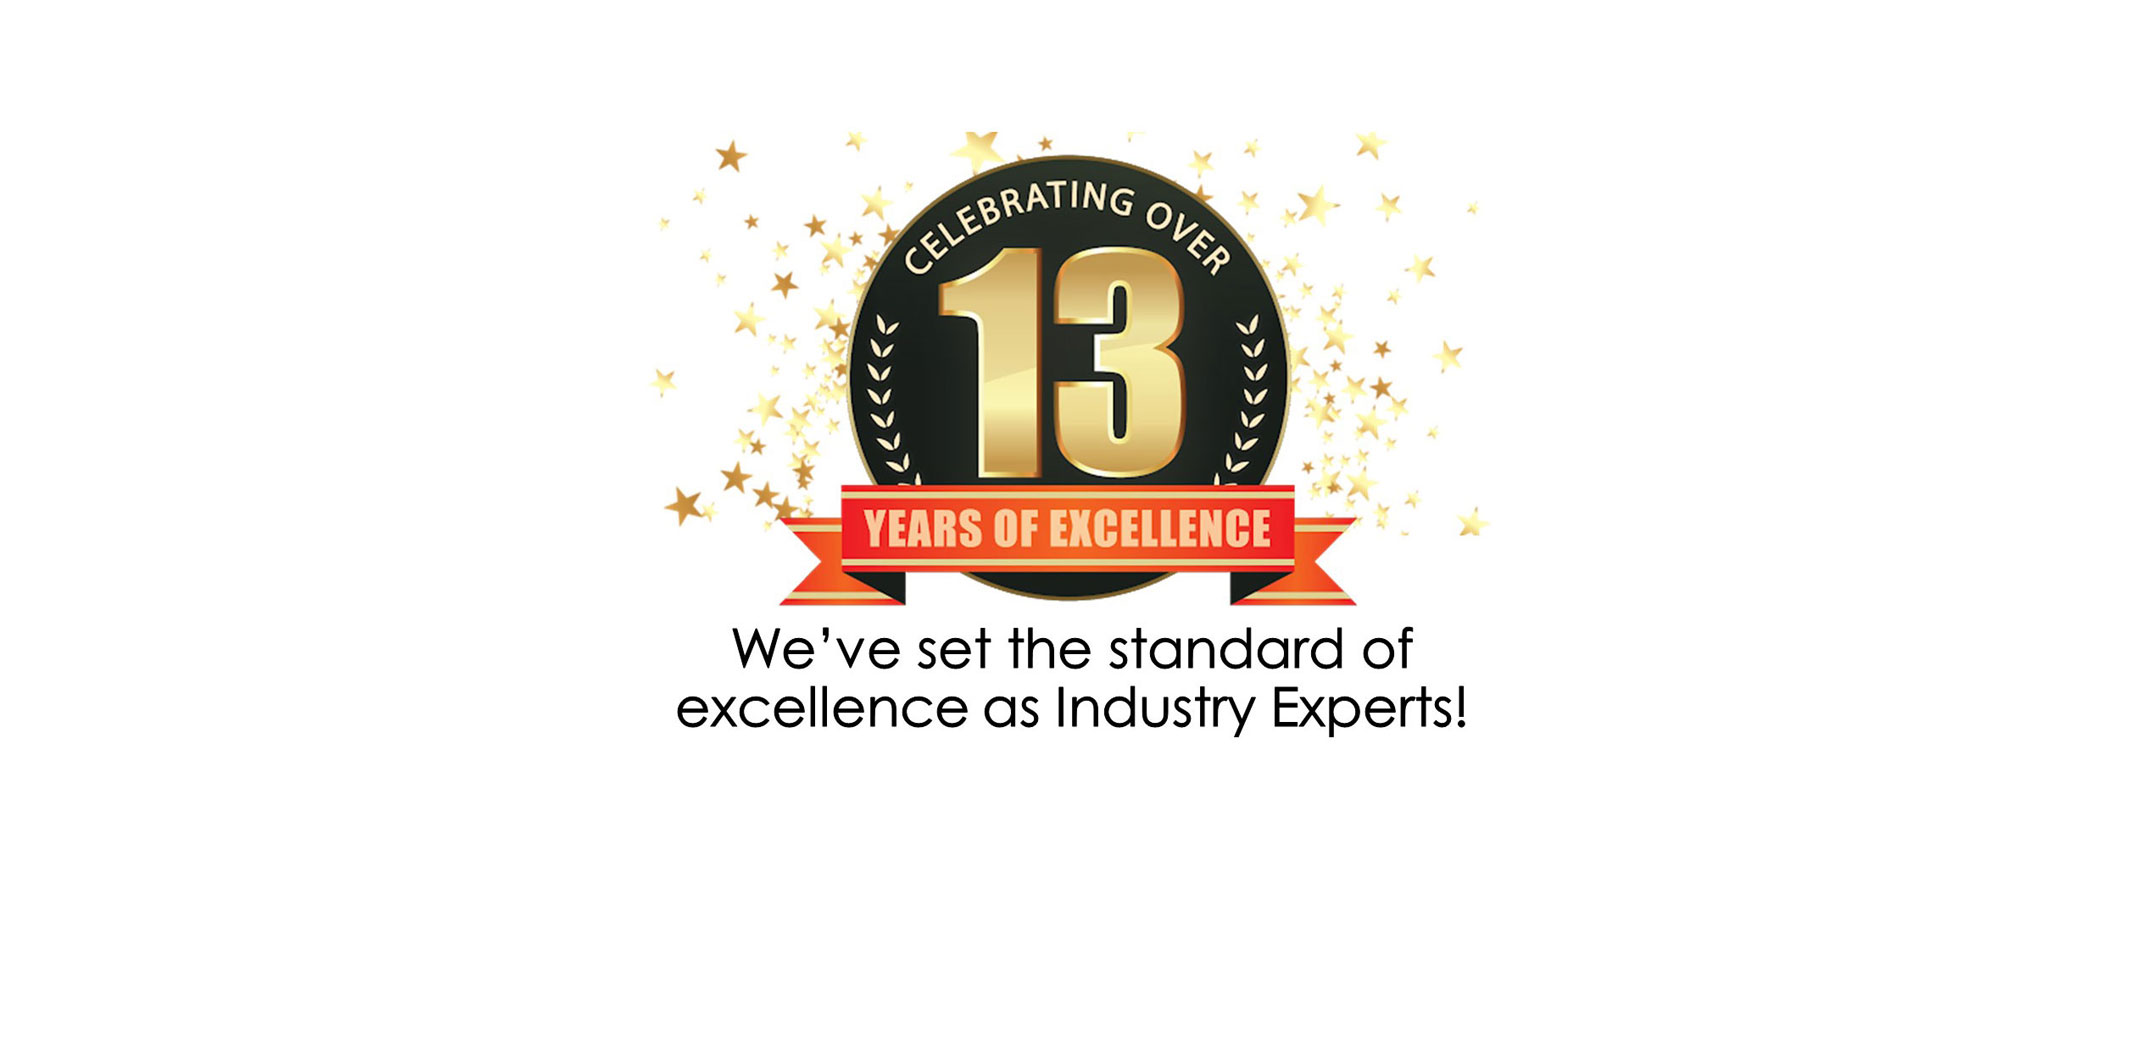 Celebrating Over 13 Years of Excellence - We've set the standard of excellence as industry experts